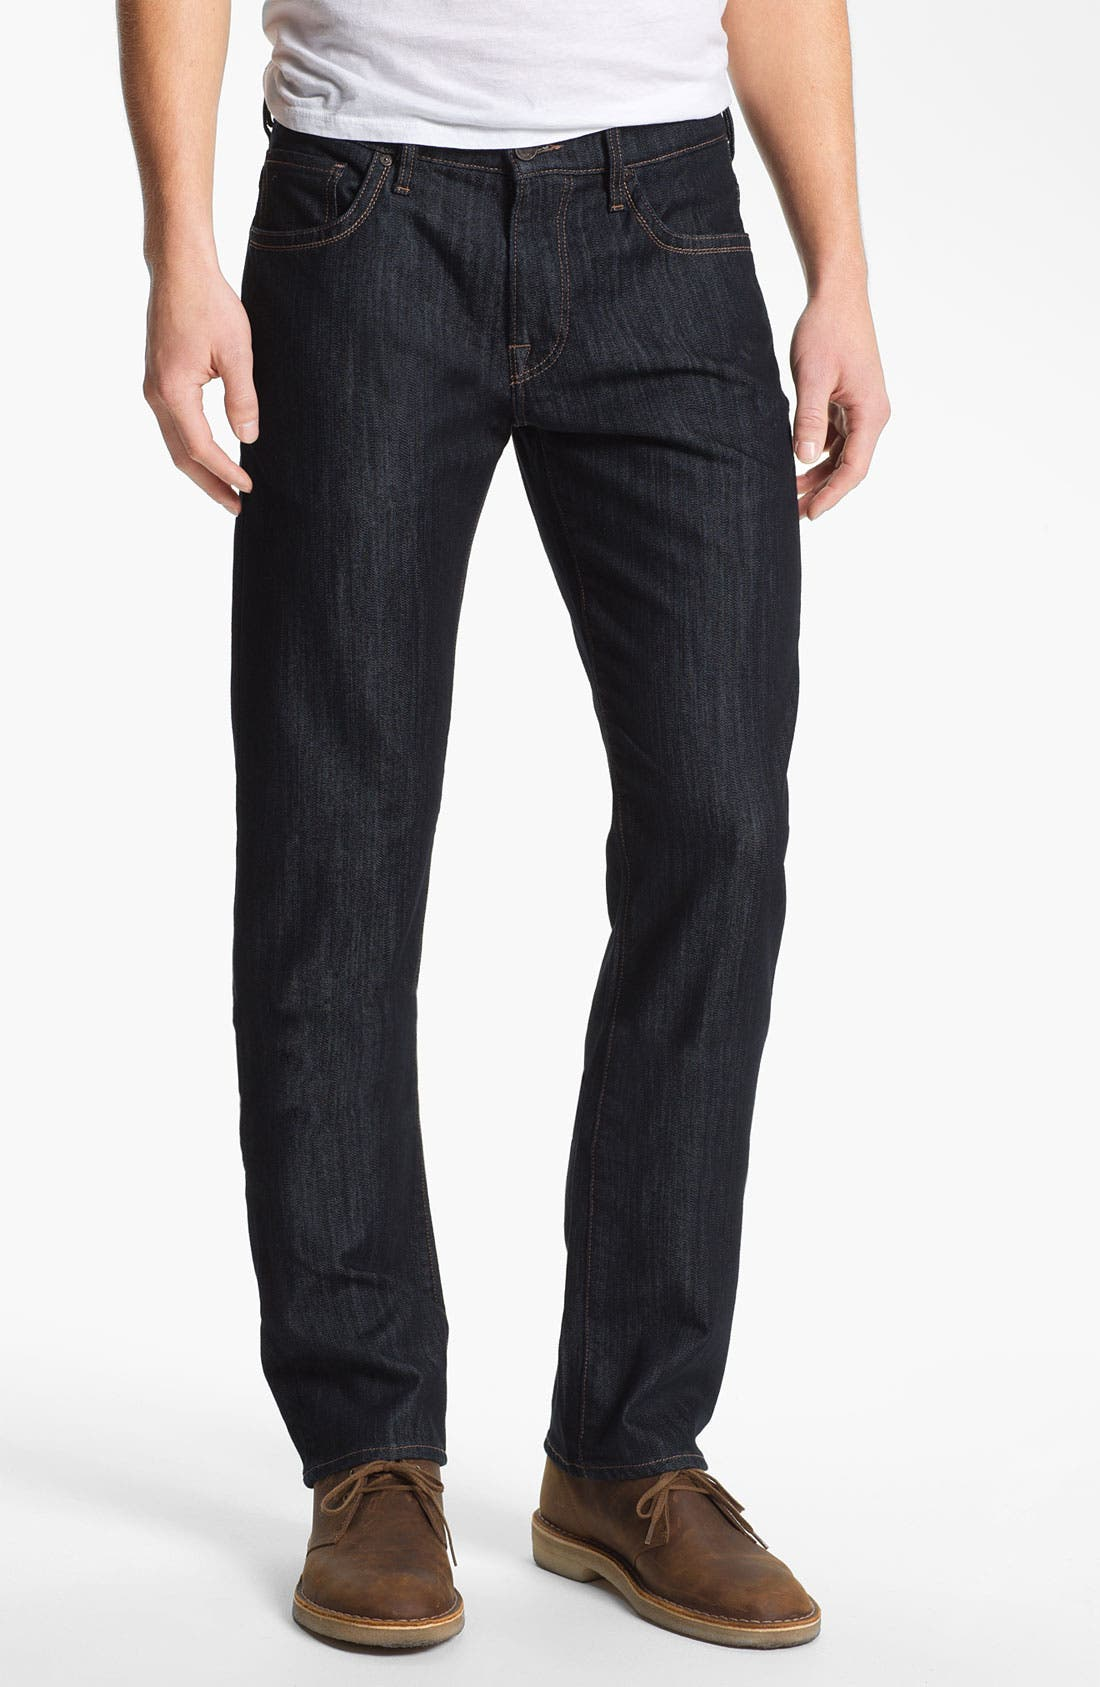 'Courage' Straight Leg Jeans,                         Main,                         color, Rinse Mercerized Wash